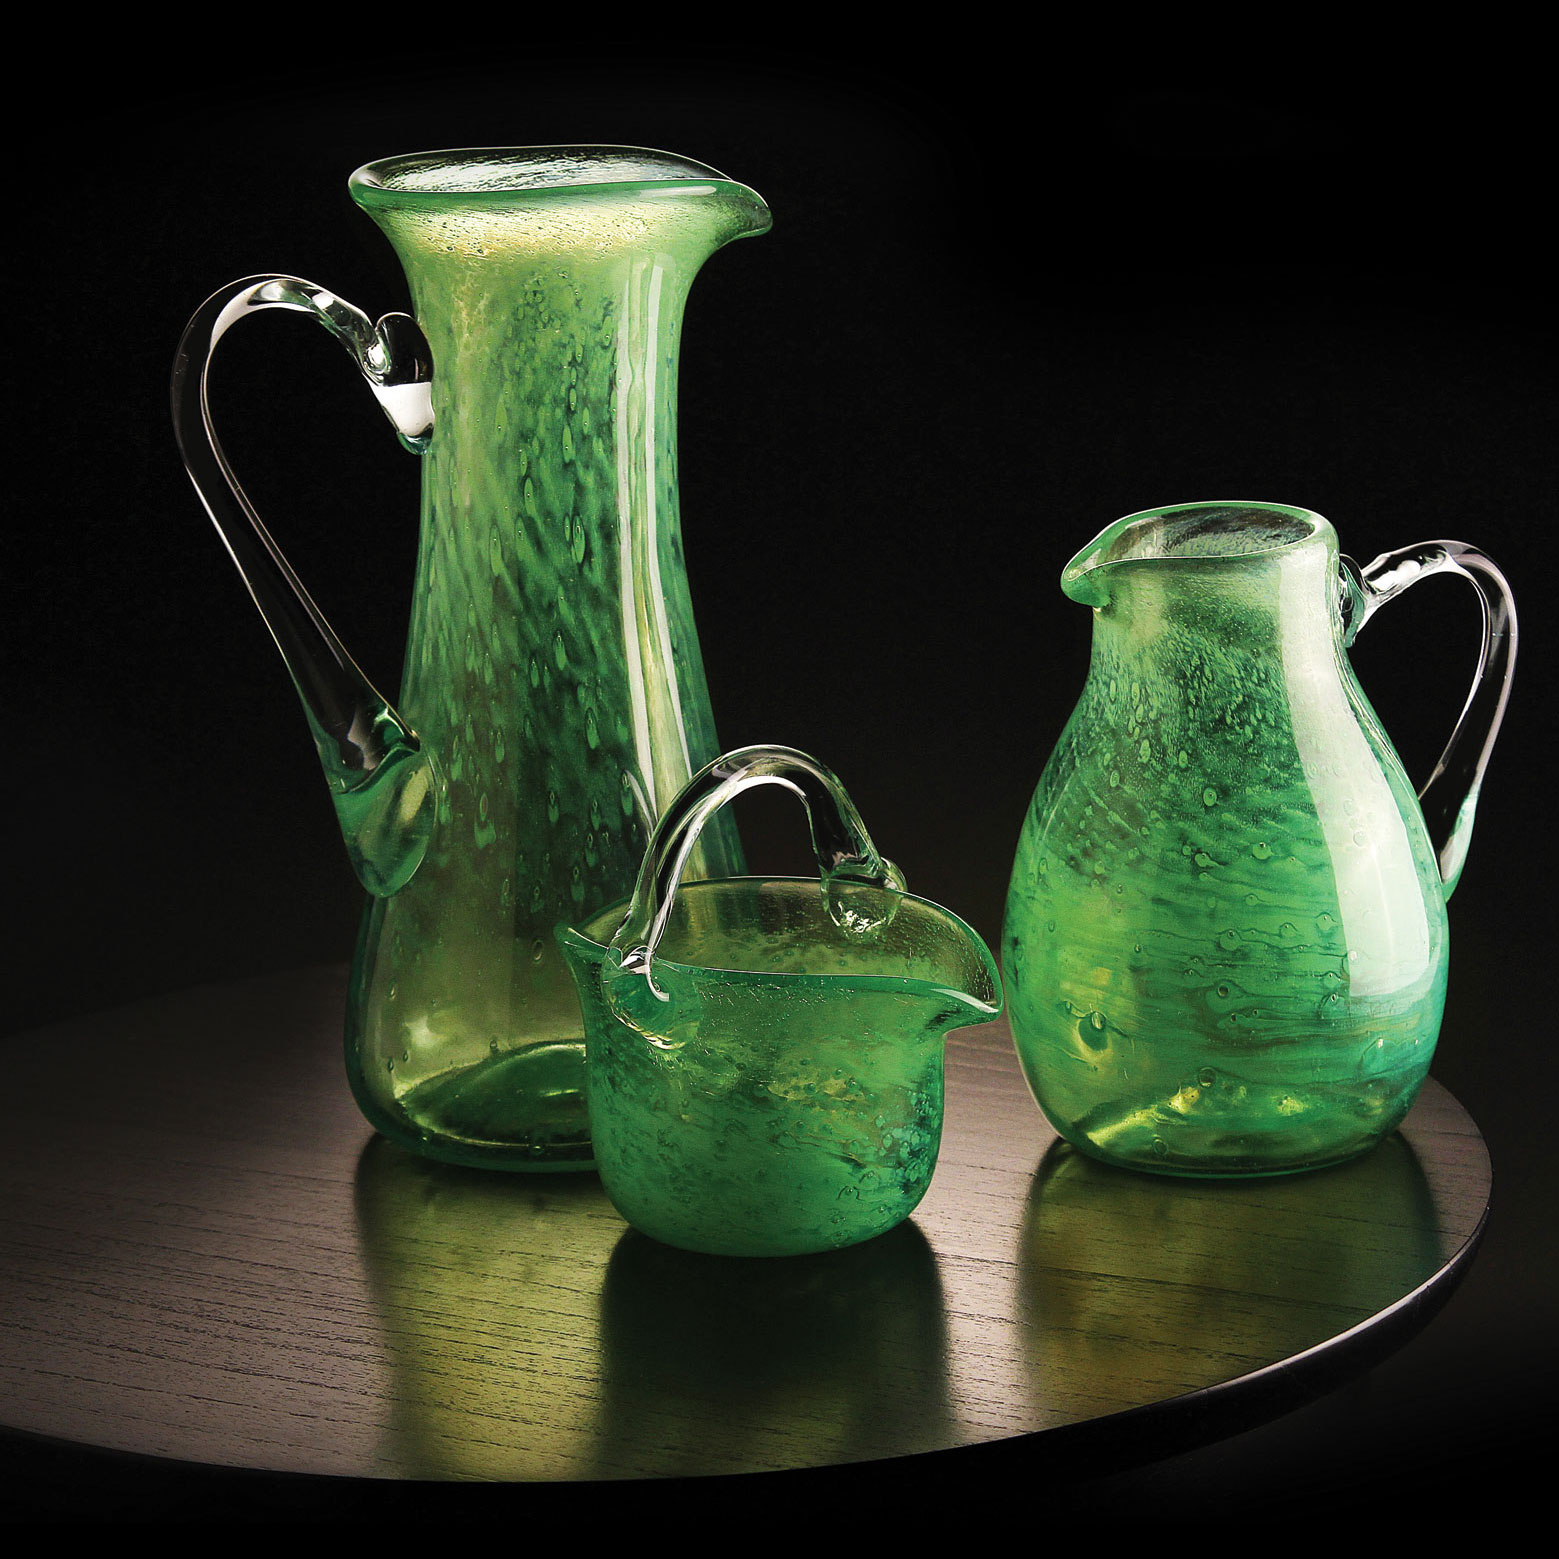 Cashs Ireland, Art Glass Forty Shades of Green, Medium Pitcher